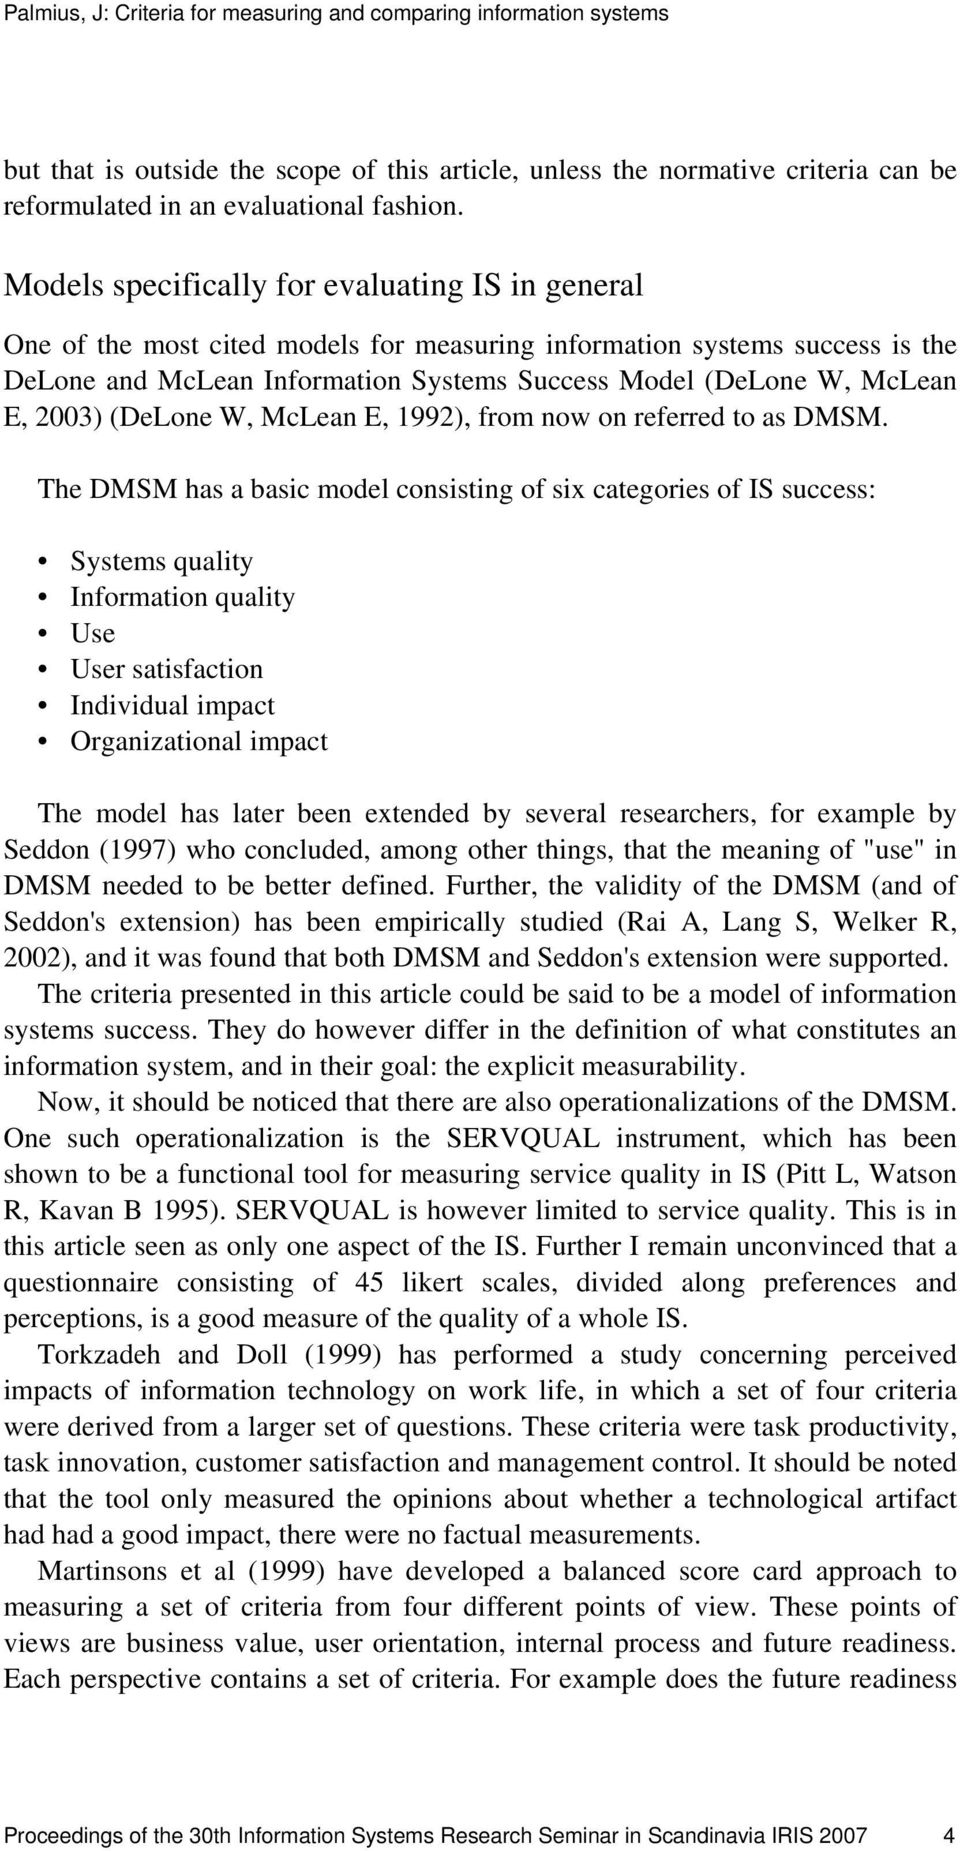 2003) (DeLone W, McLean E, 1992), from now on referred to as DMSM.